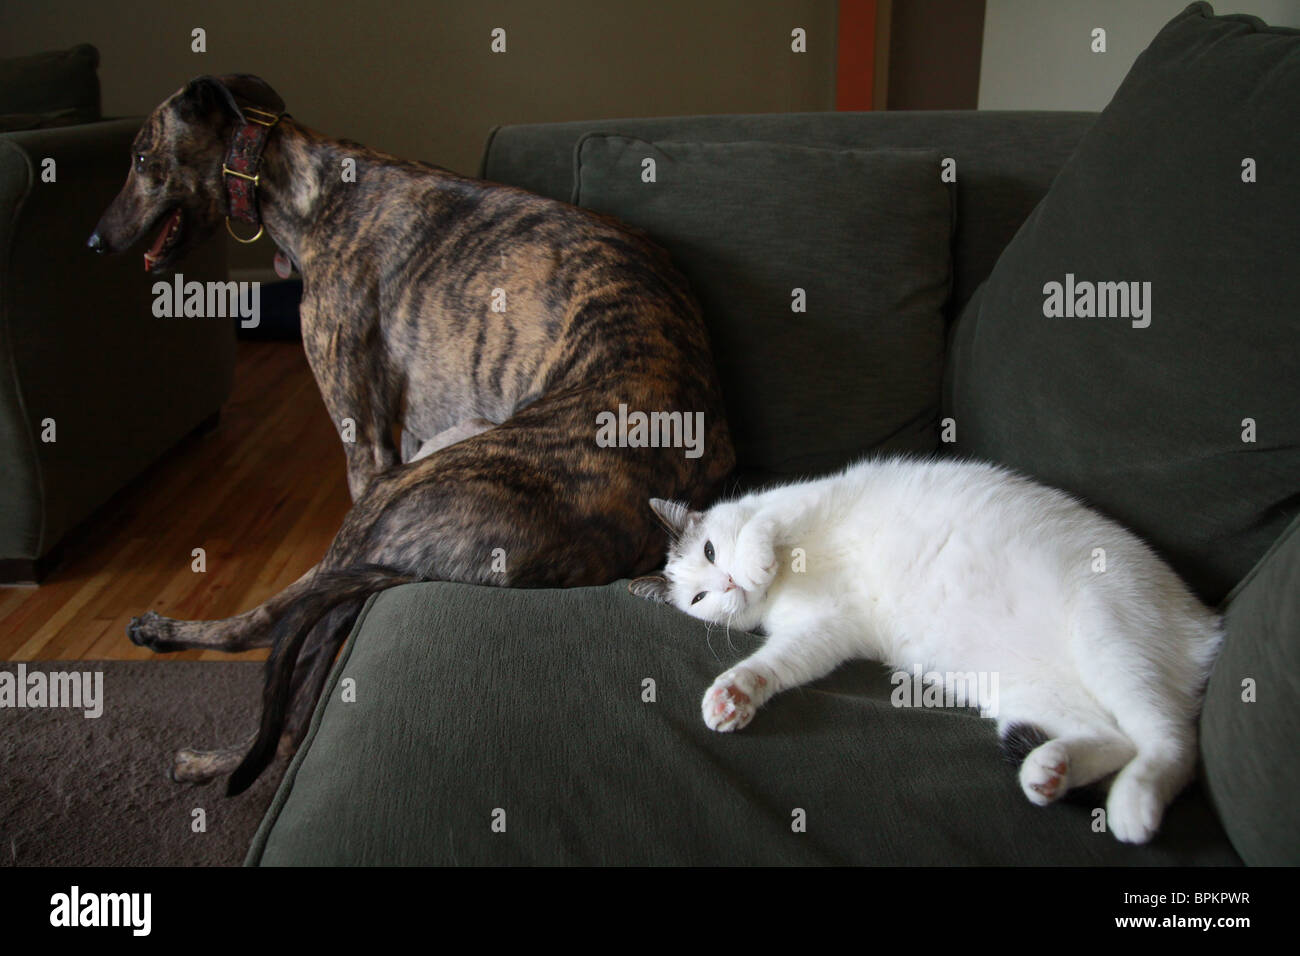 A Large Dog And A Cat Sitting On A Couch.